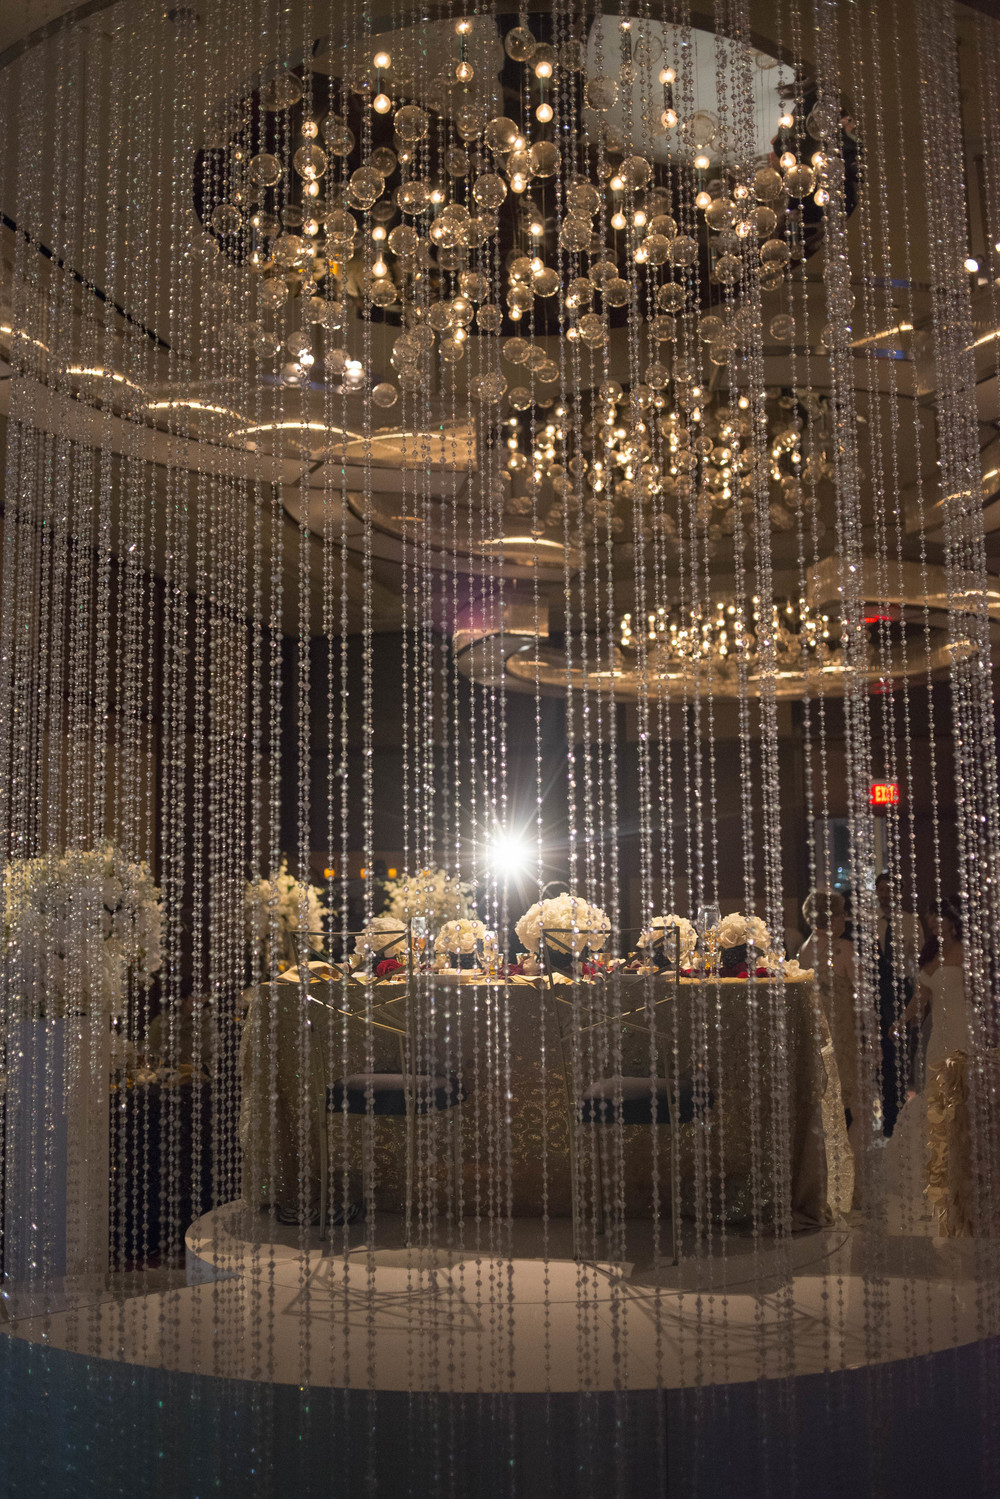 Sweetheart table seen through the crystal drape. Credits:  Wedding Planning and Event Design by  Andrea Eppolito Events  Luxury Las Vegas Wedding held at  The Mandarin Oriental .  Florals and Decor handled by  Destinations by Design .  Photography by  AltF Photography .  Wedding Film and Videography by  Pure Light Creative  with Music and Entertainment by  Mike Fox & Company .  Hair and Make Up by  Your Beauty Call .  Photo Booth and Video Screen by  The Joy Squad .    Stationery by  Laura Damiano Designs .